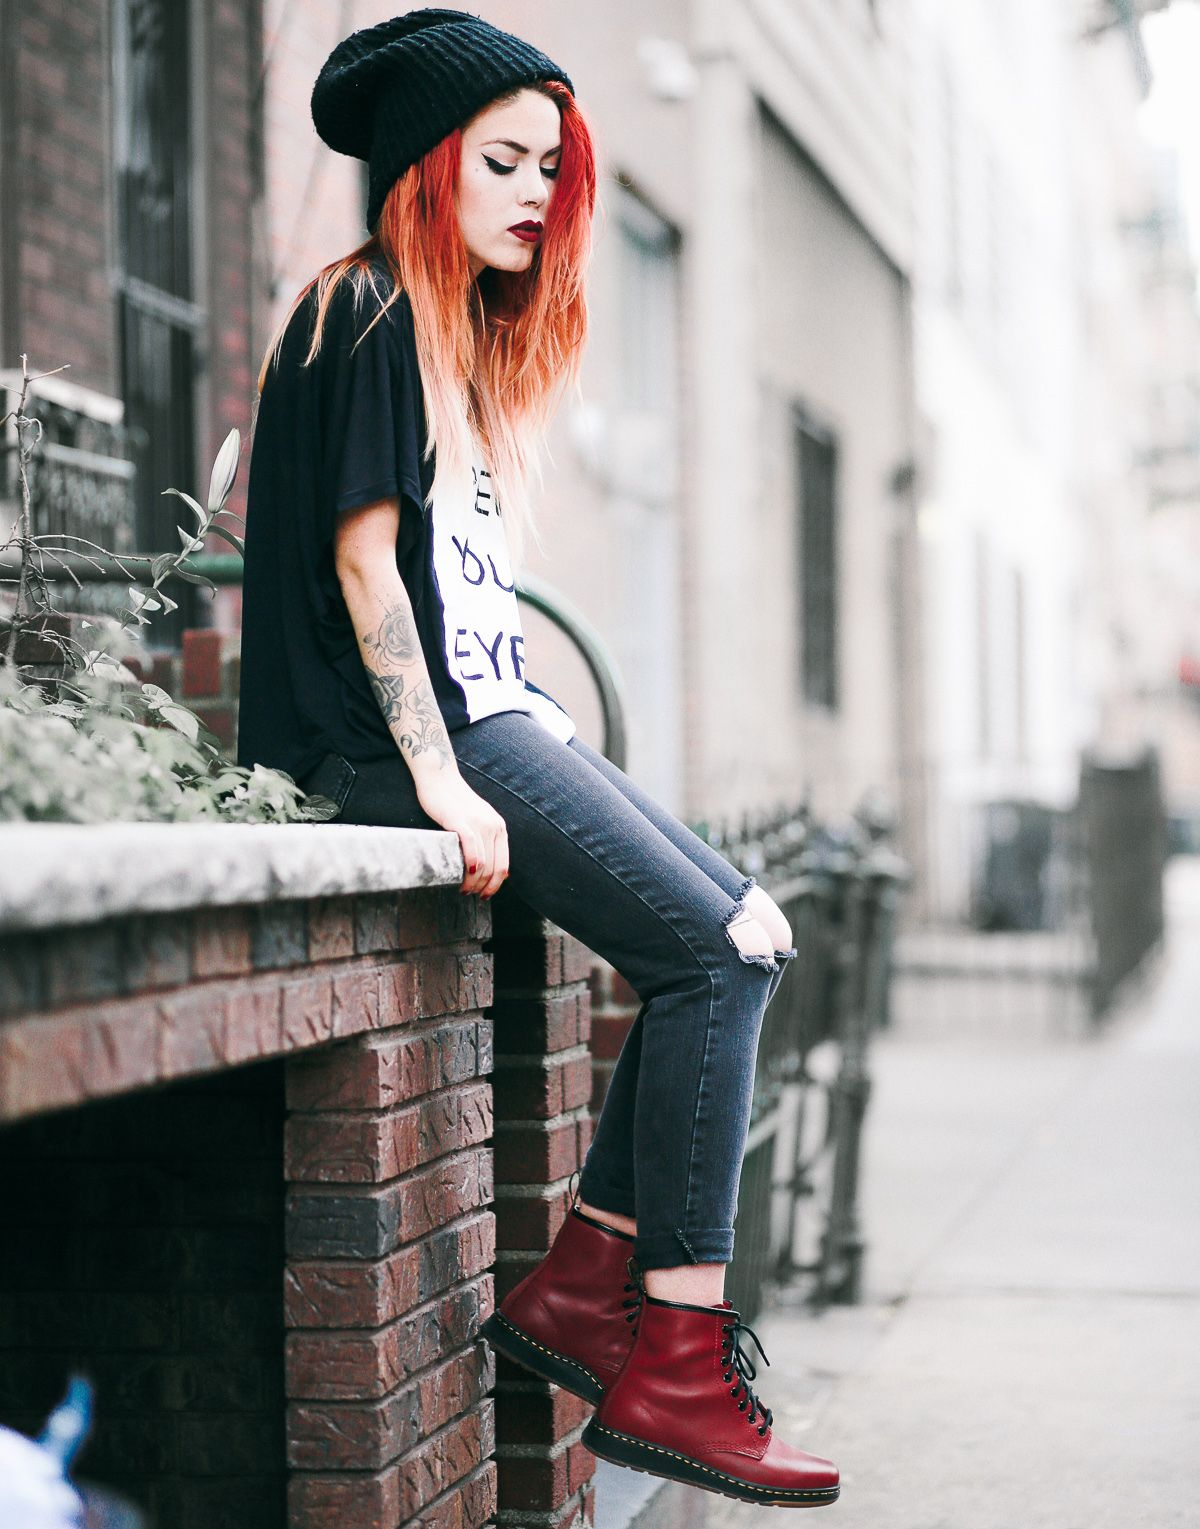 5278d54a1704 The Newton boot in cherry red from the new #DMsLITE range. Worn by Luanna.